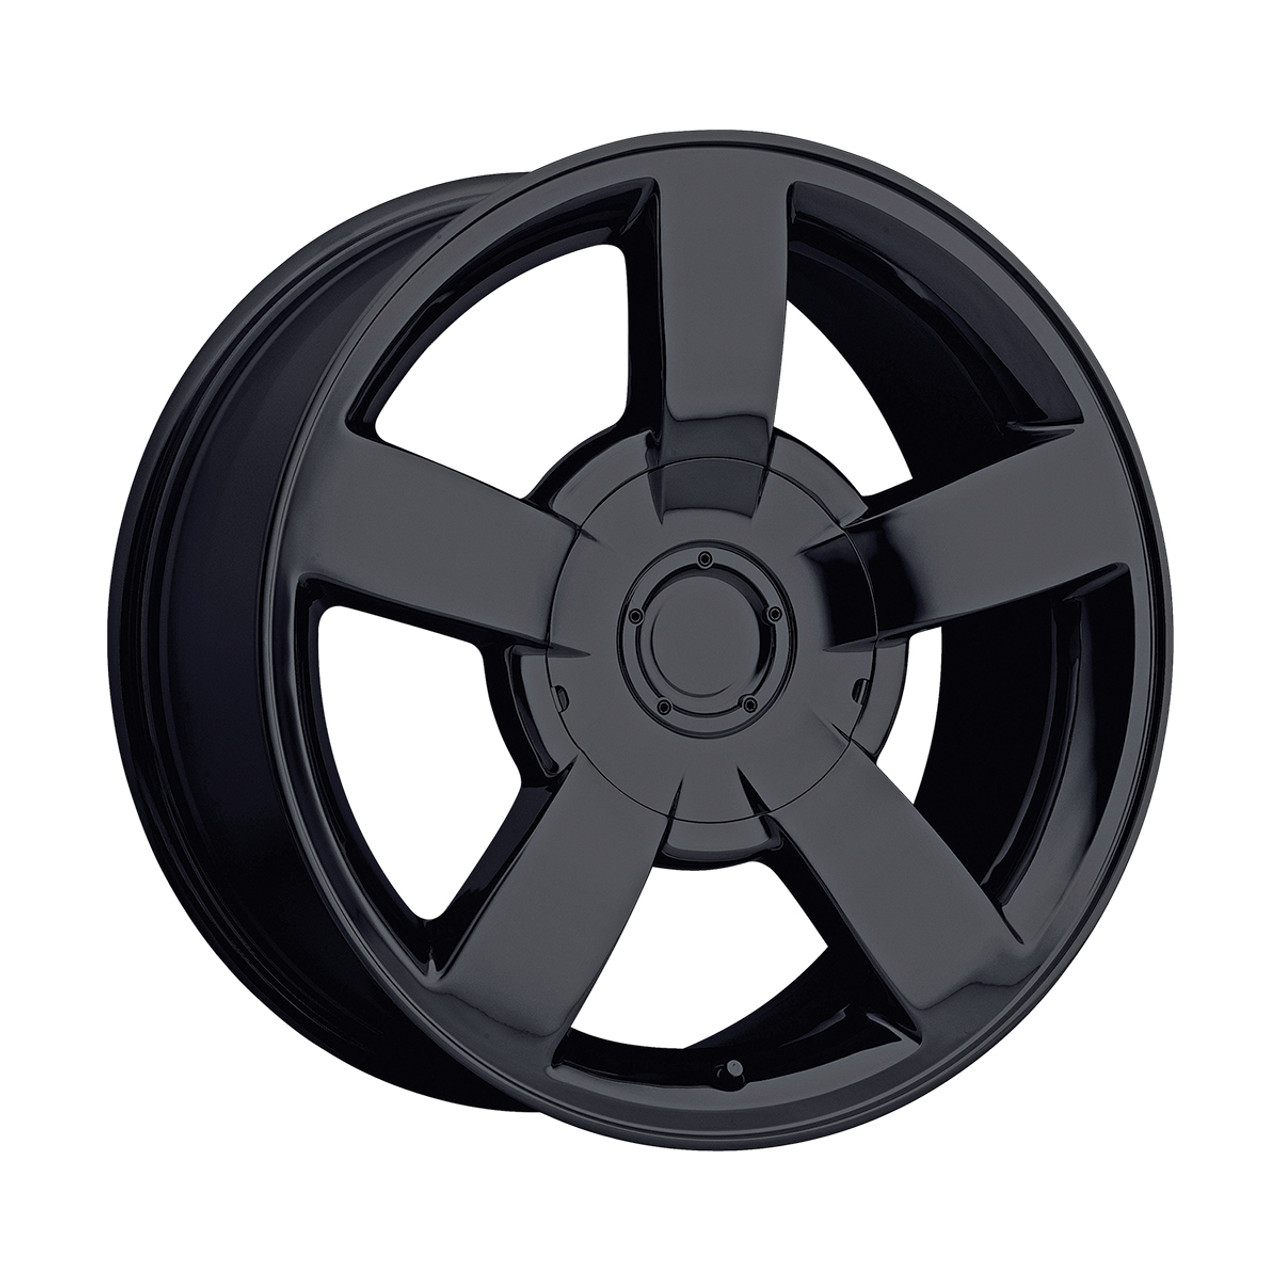 20 Fits Chevrolet Silverado Ss Wheels Rims Gloss Black Set Of 4 20x8 5 Hollander 5243